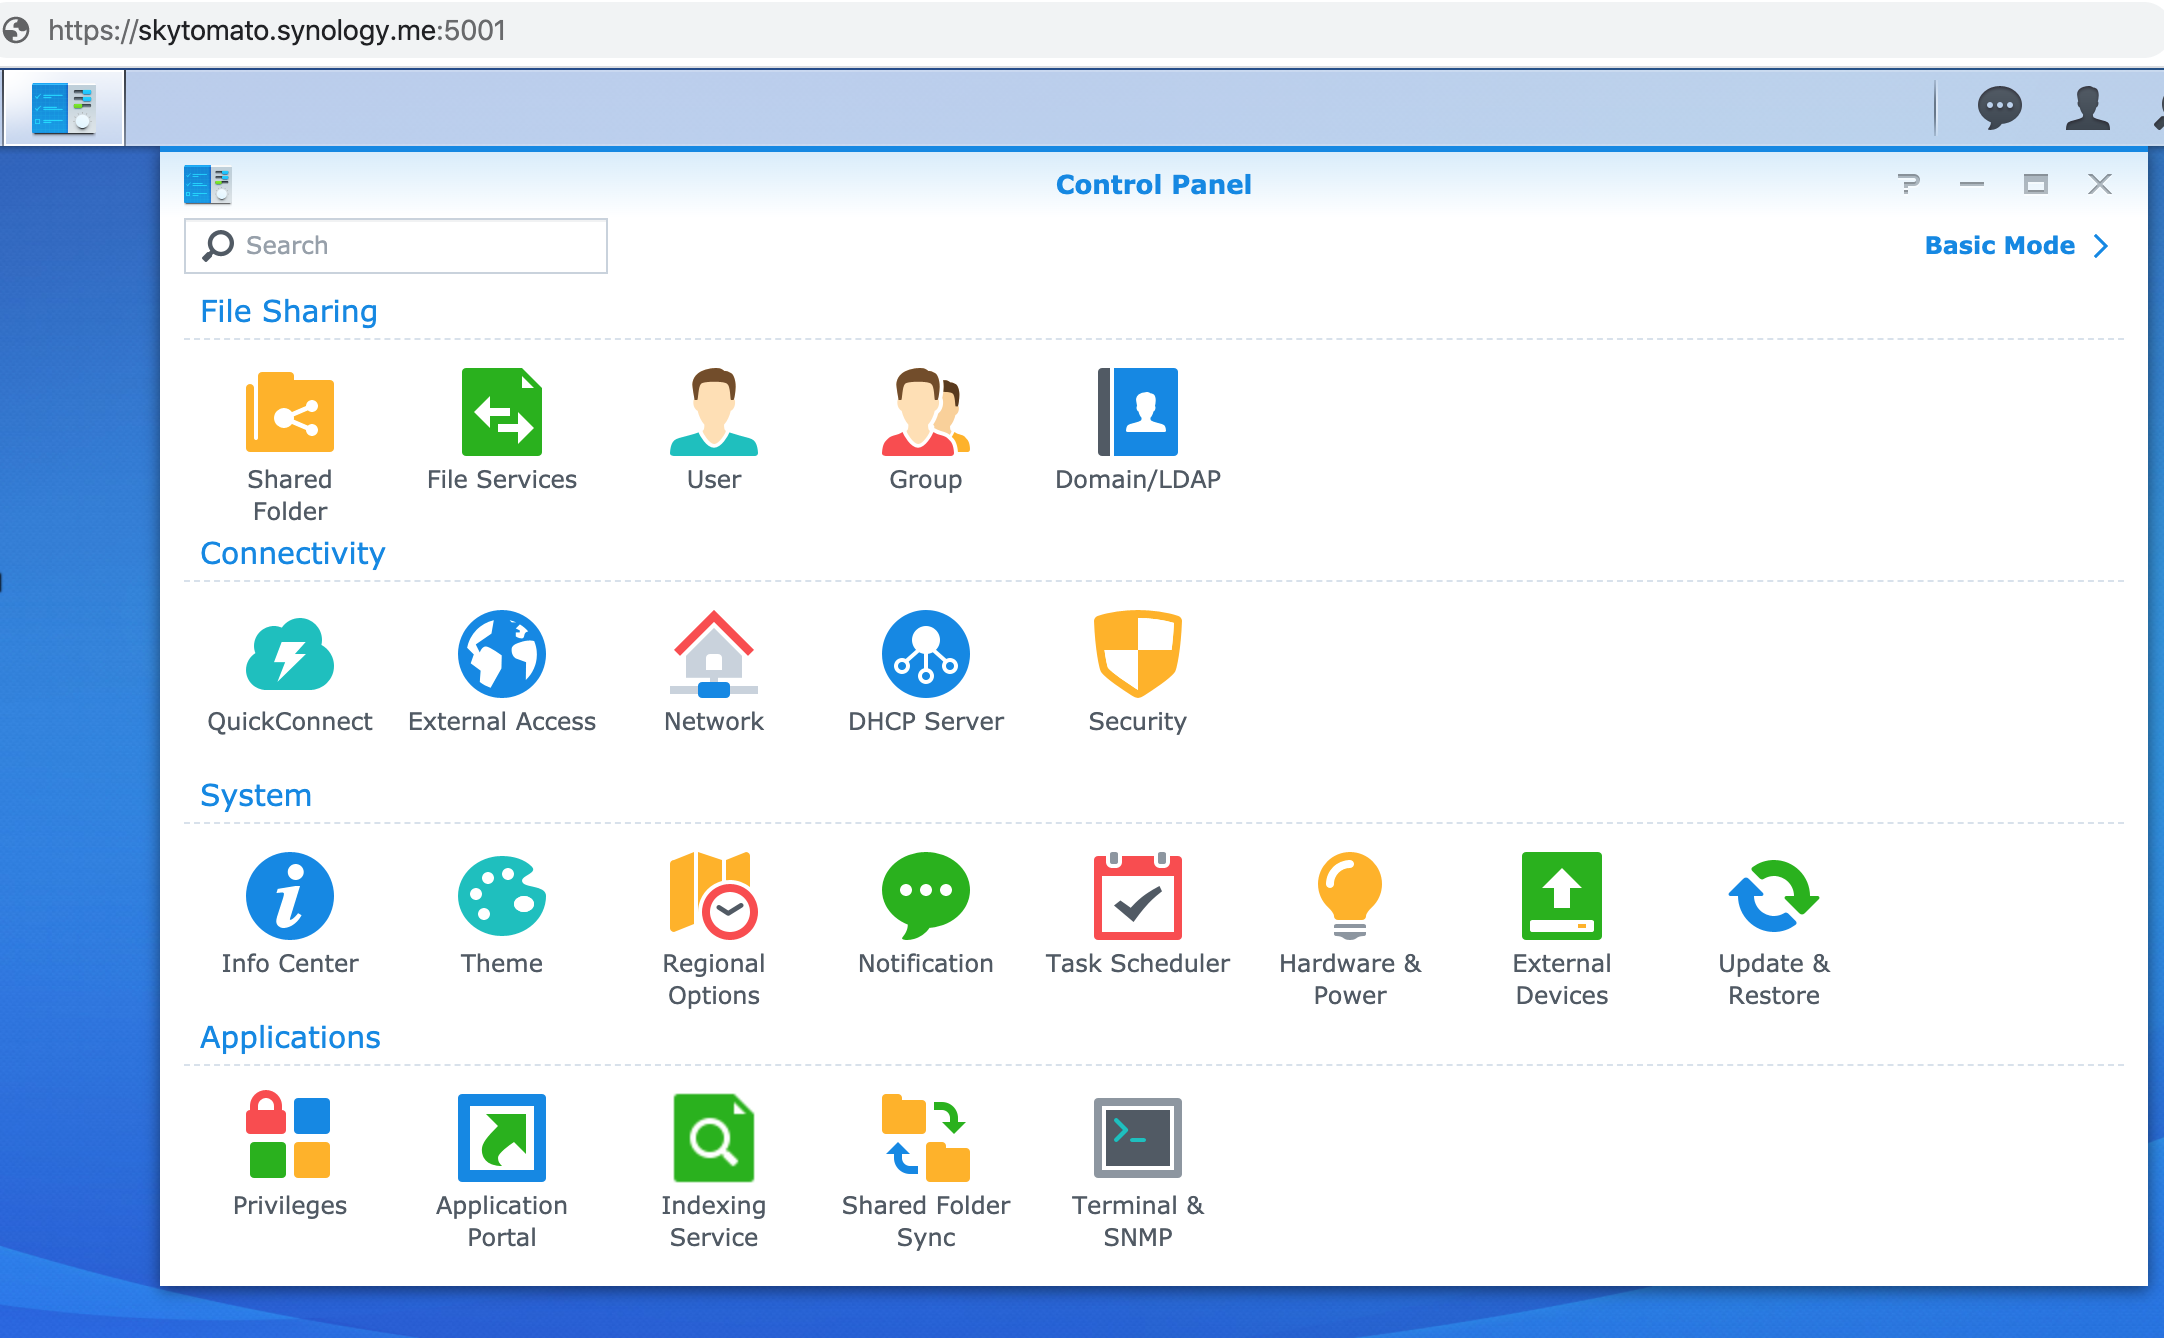 Synology - Control Panel